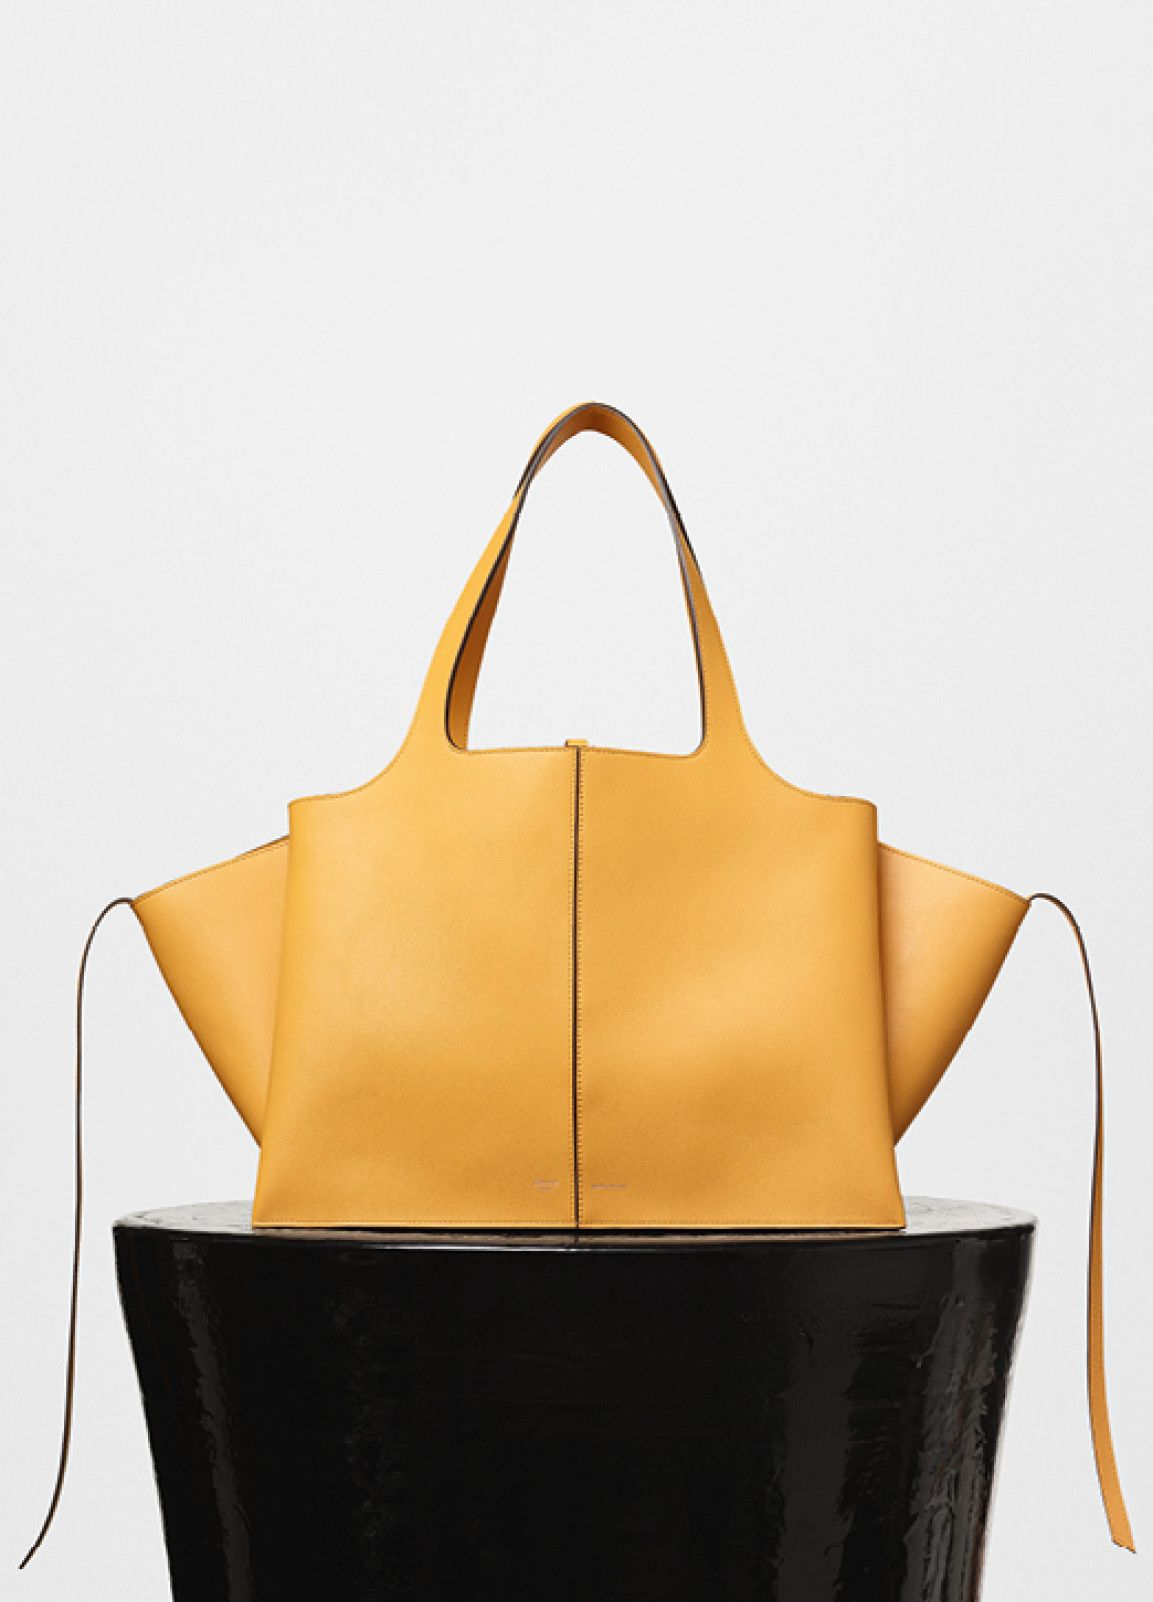 Medium Tri-Fold Bag in Natural Calfskin - Céline  fff046ed069ed